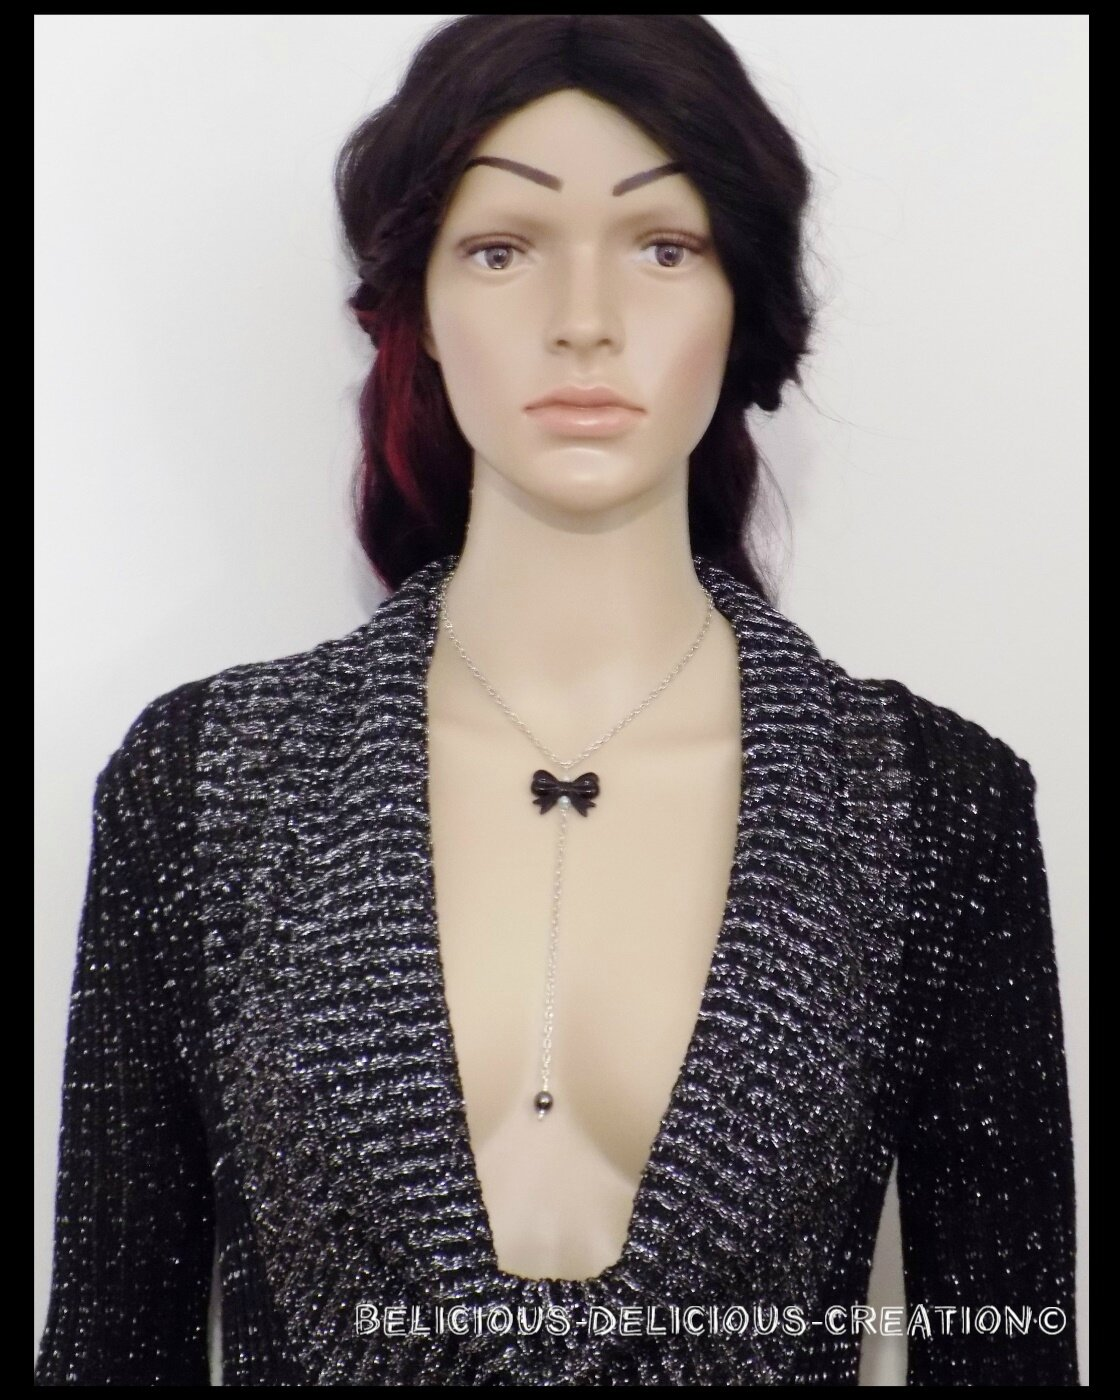 Original Collier !! BOW BOW !! noir T: 38cm metal et palstique collier BELICIOUS-DELICIOUS-CREATION